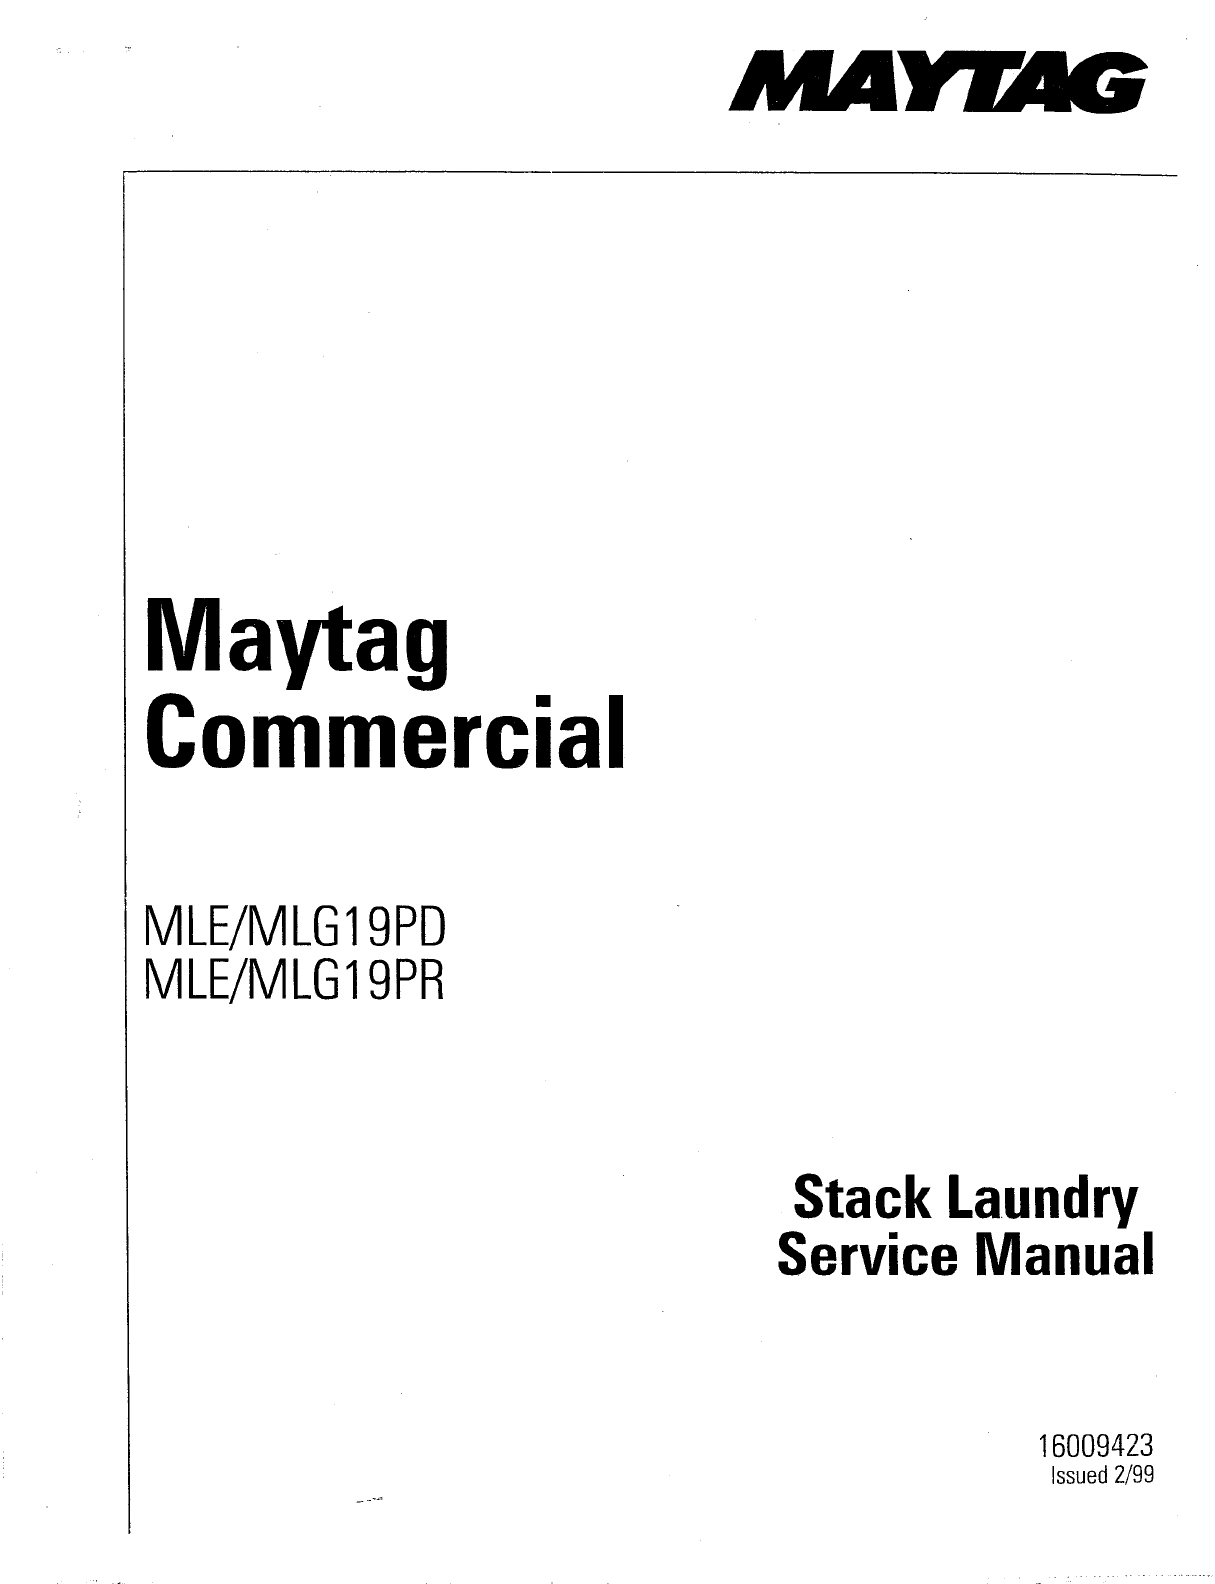 maytag washer mle mlg19pd user guide manualsonline com rh manualsonline com maytag commercial washer service manual maytag commercial washer user manual